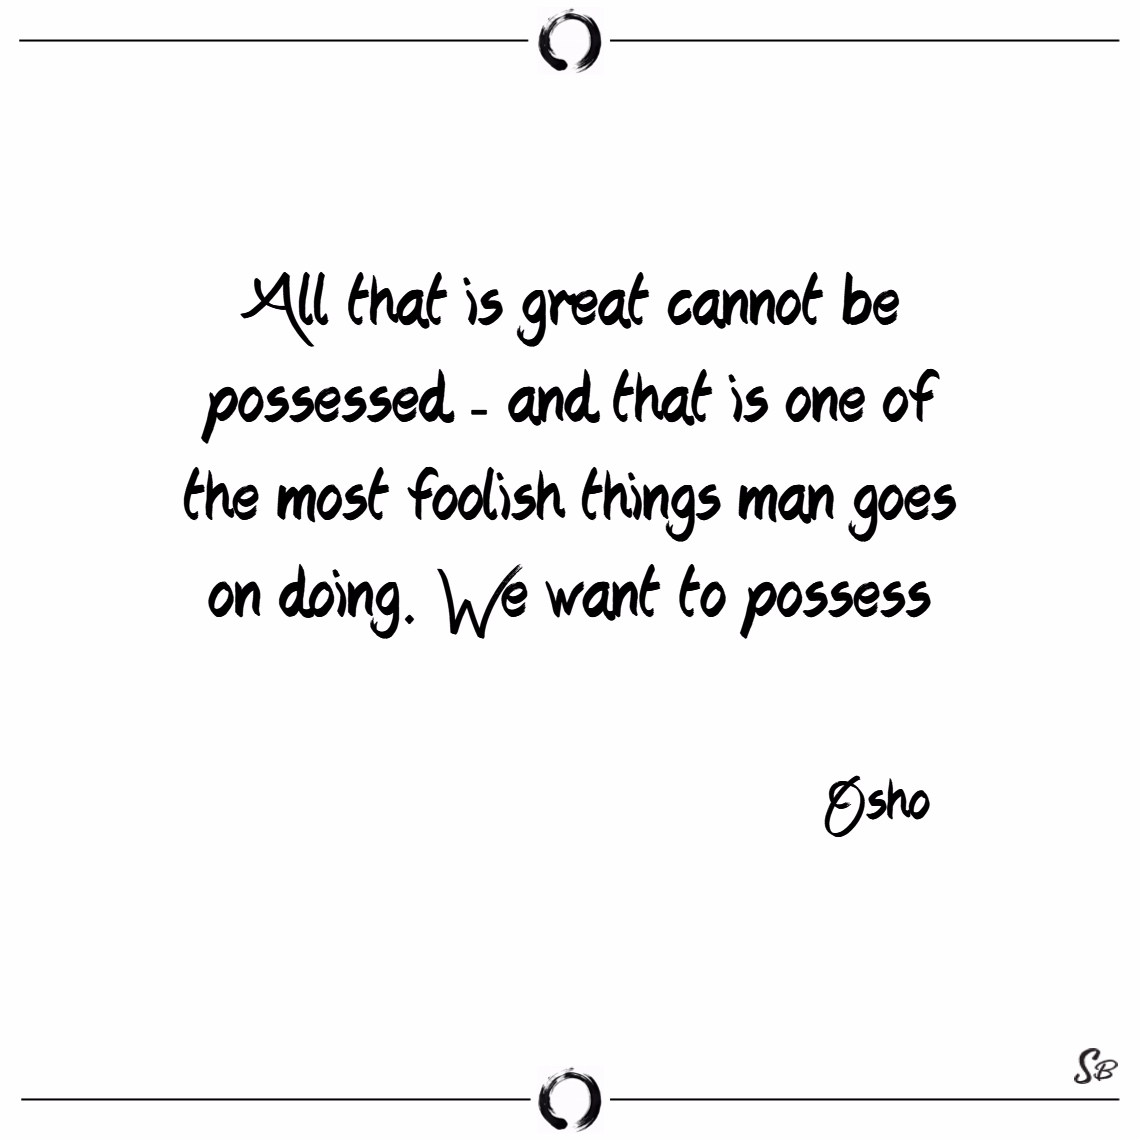 All that is great cannot be possessed and that i